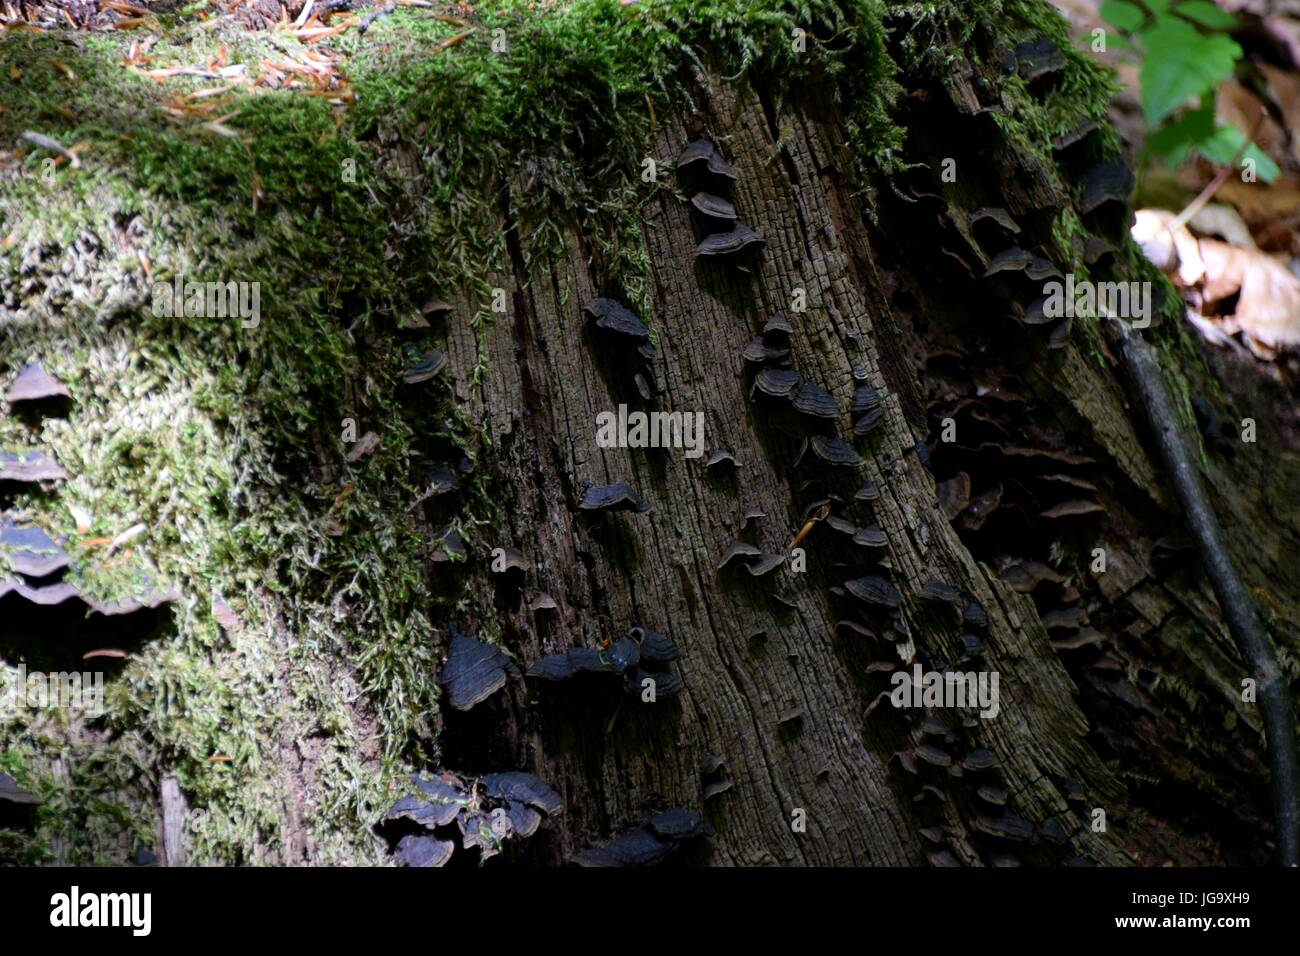 alter Baumstamm / old tree trunk - Stock Image